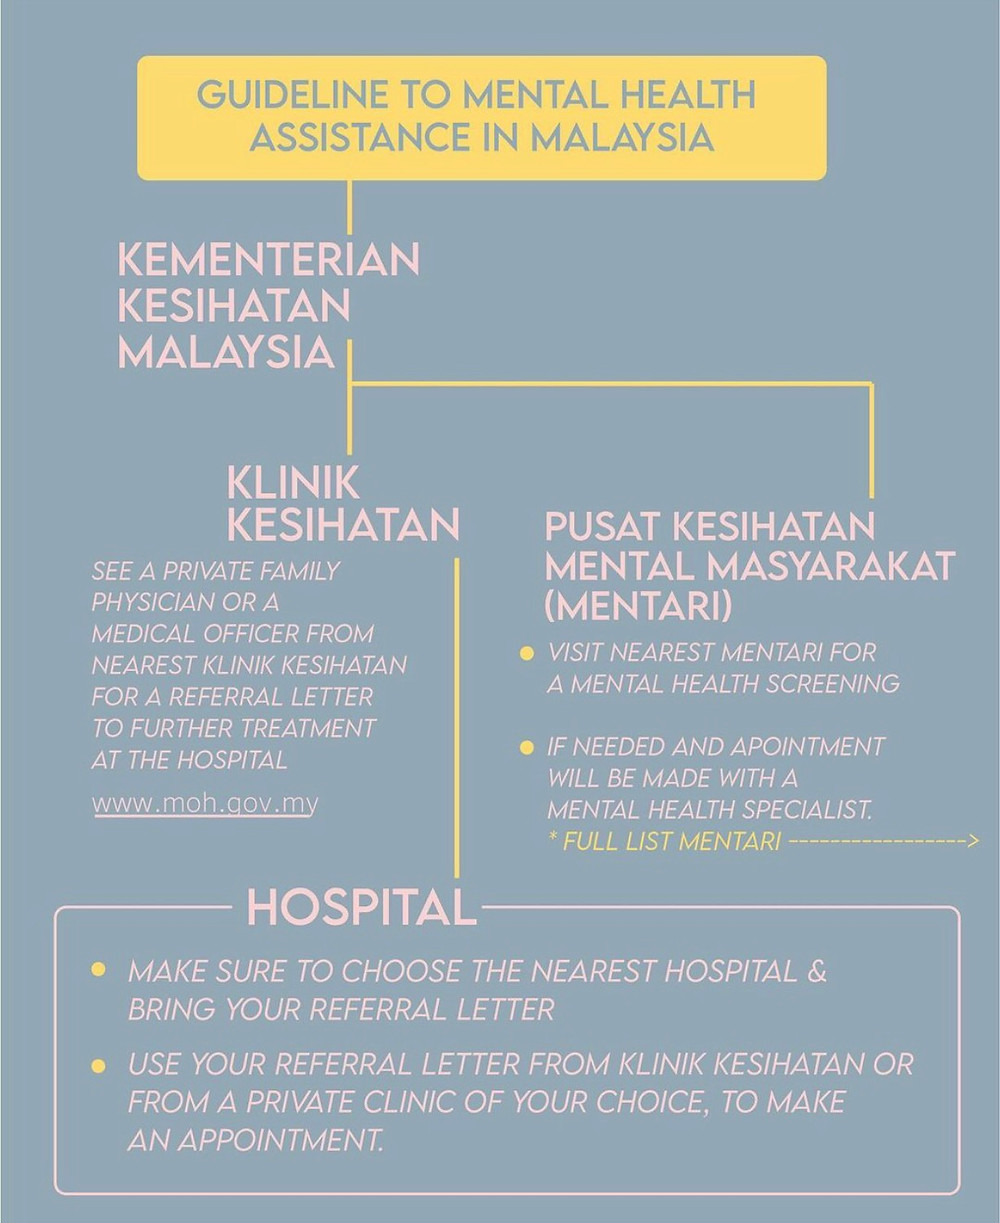 Mental health assistance in malaysia